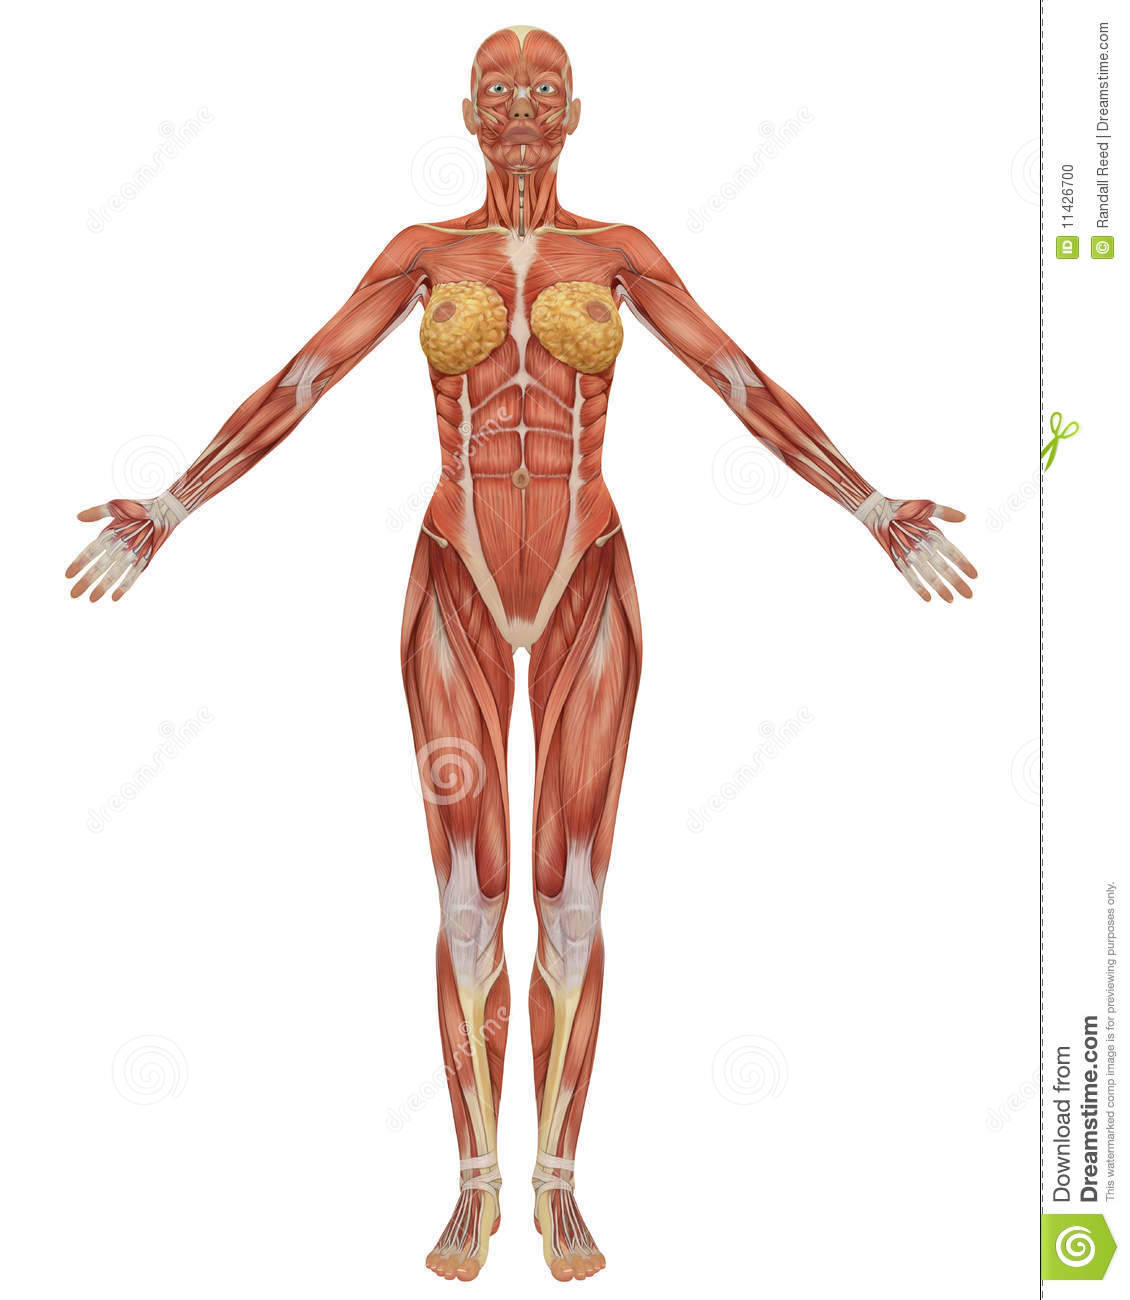 female muscular anatomy front view stock photo - image: 11426700, Muscles